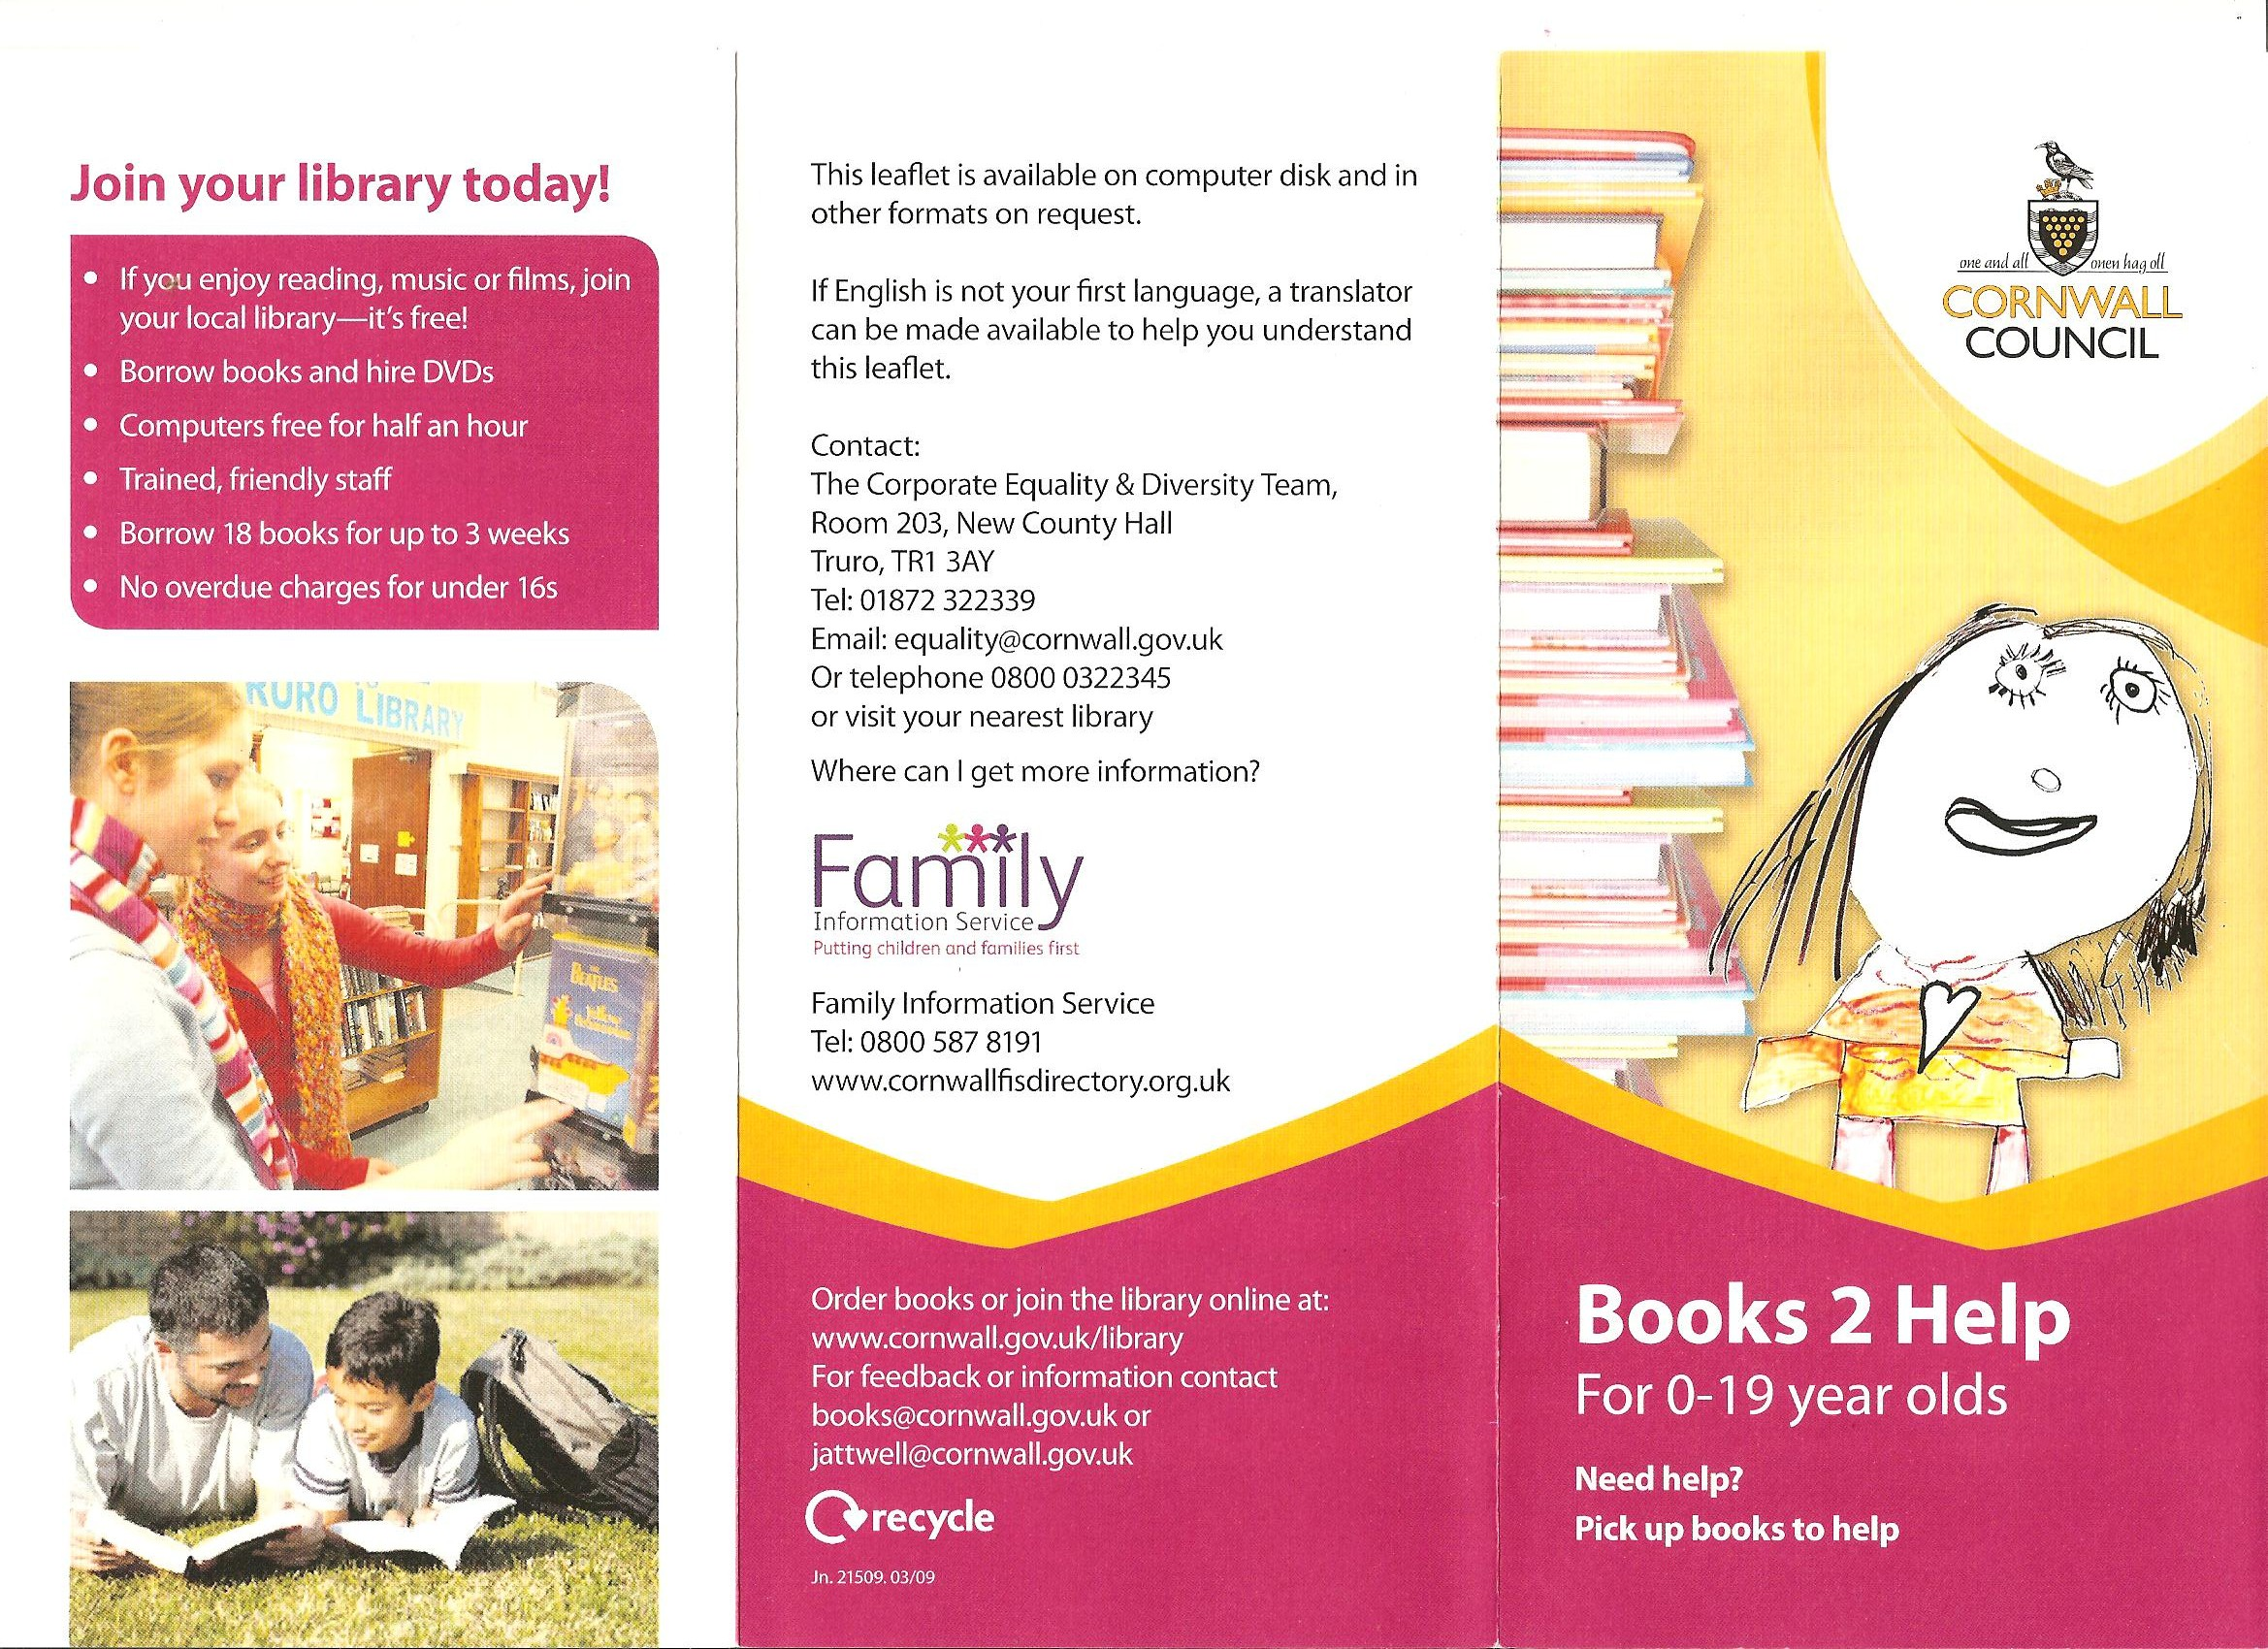 Cornwall Libraries 'Books 2 Help' leaflet